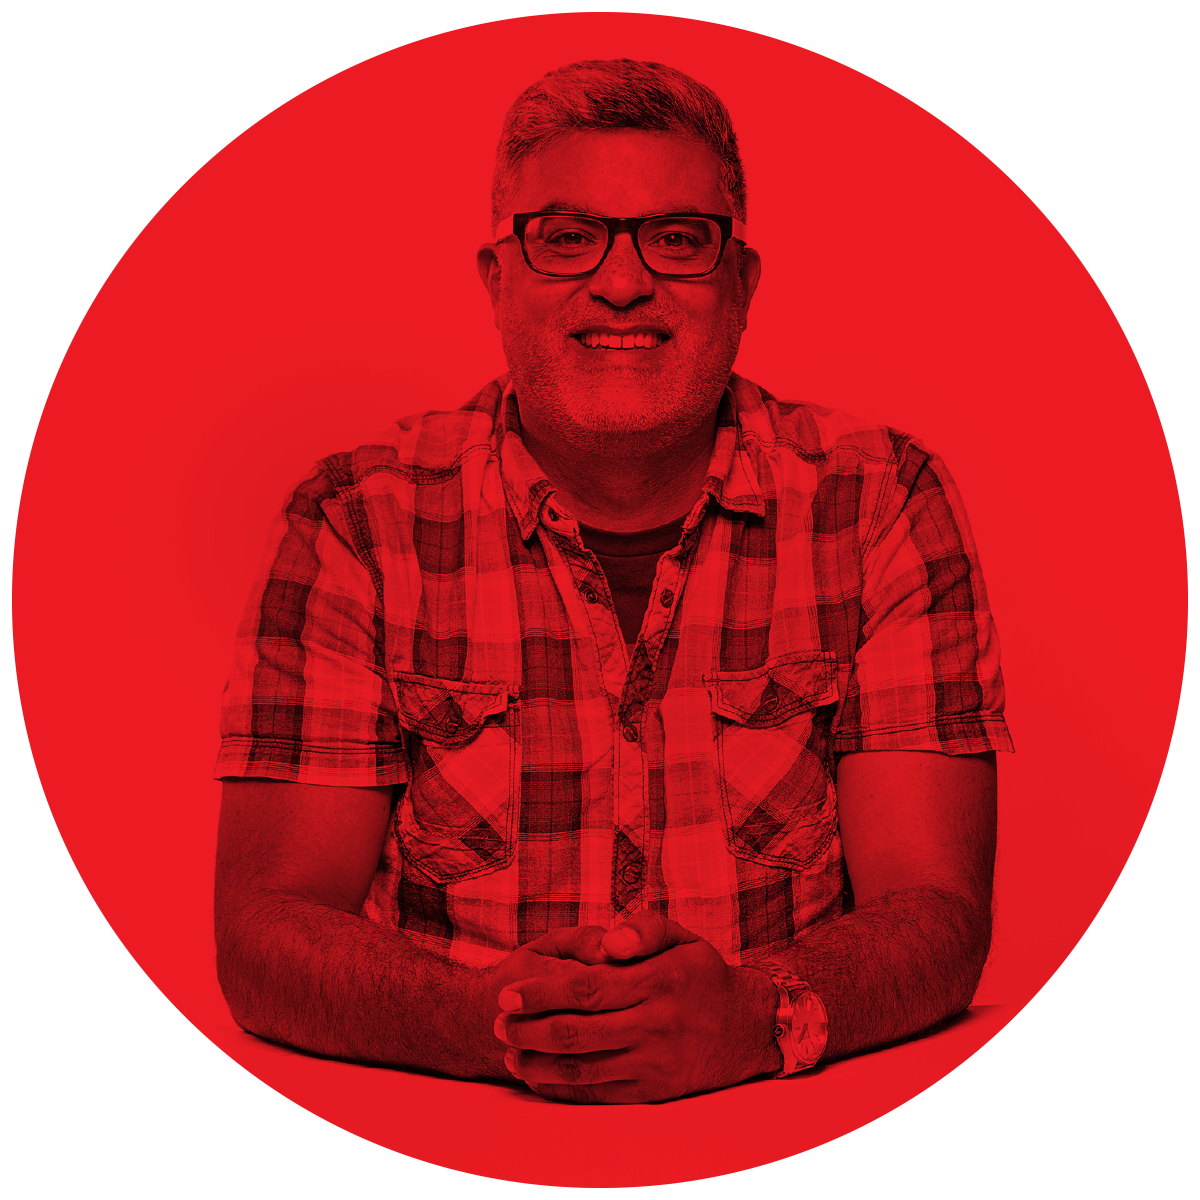 greg_parra_portrait_red_round_22.png